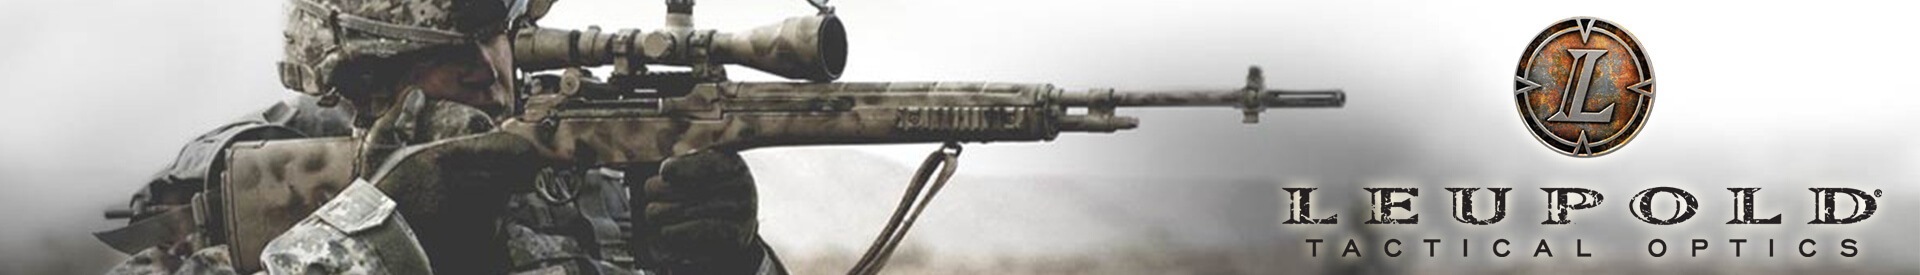 Leupold Tactical Riflescopes & Optics